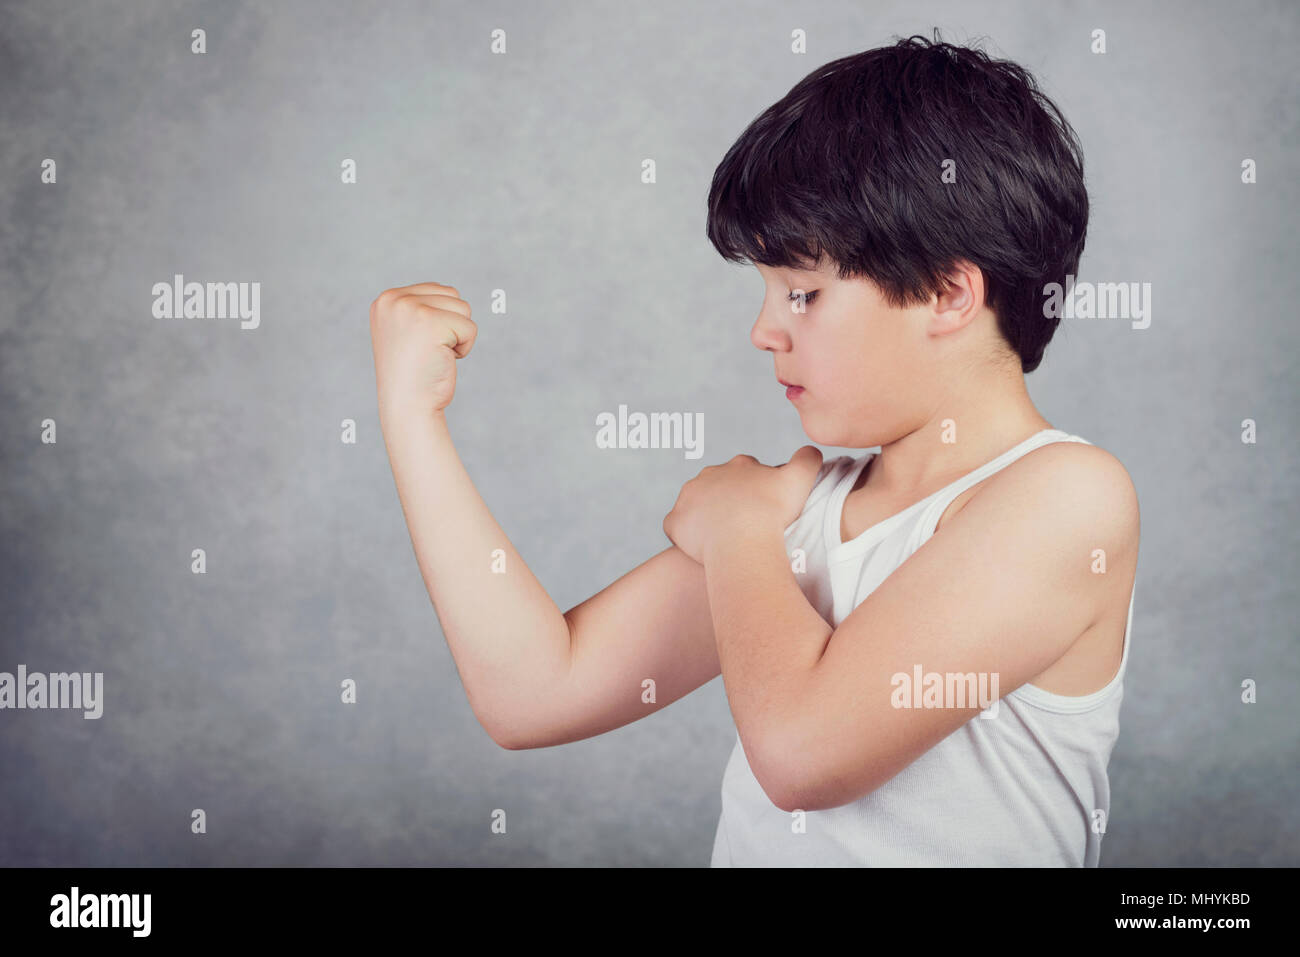 kid showing his muscles on gray background - Stock Image